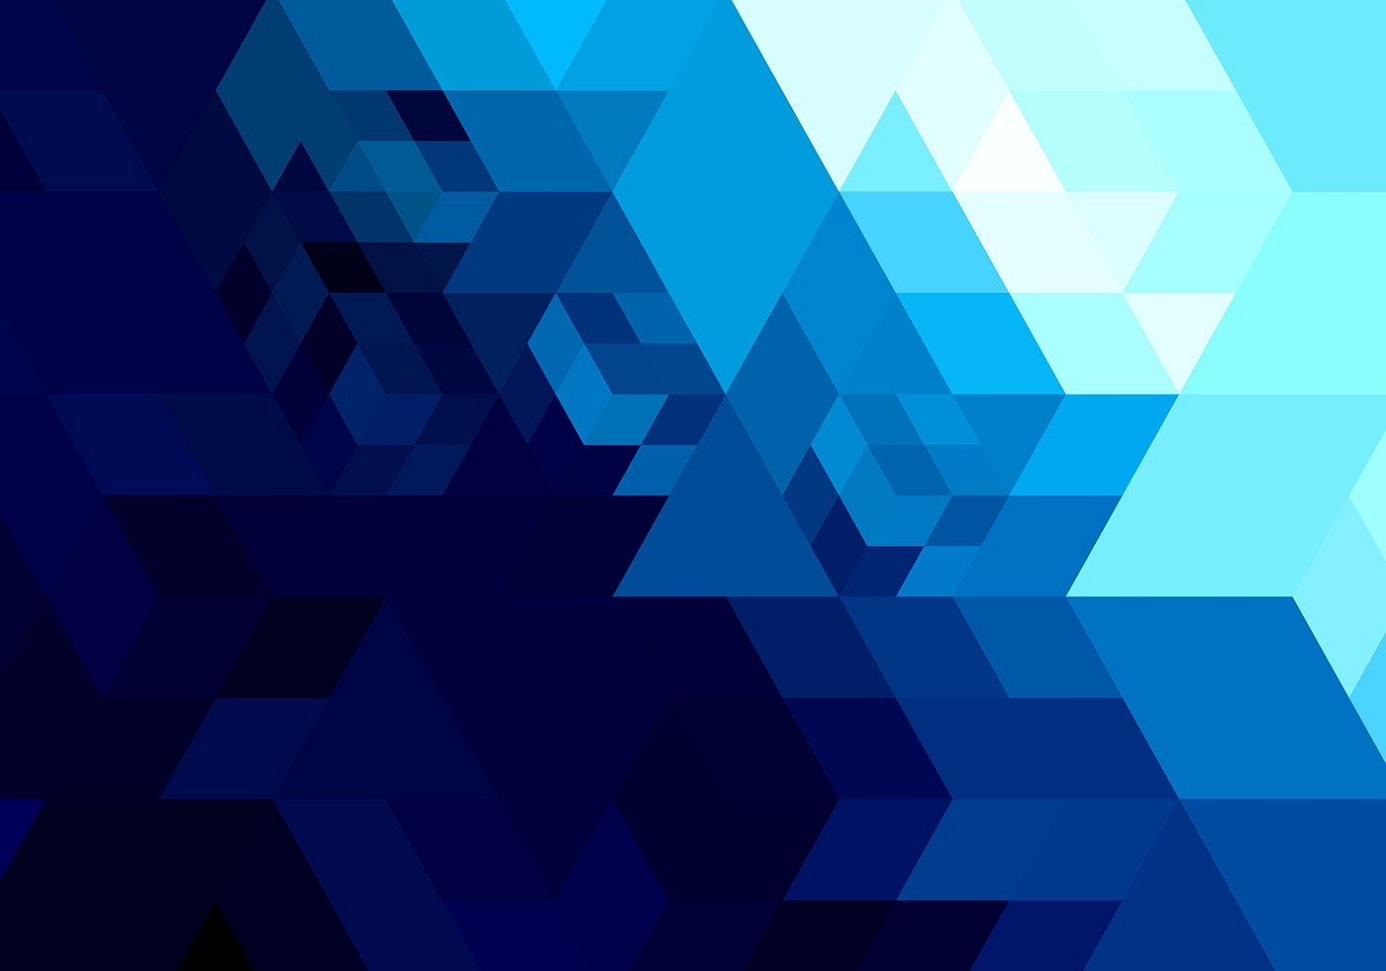 abstract royal blue wallpaper - IBackgrounds Net